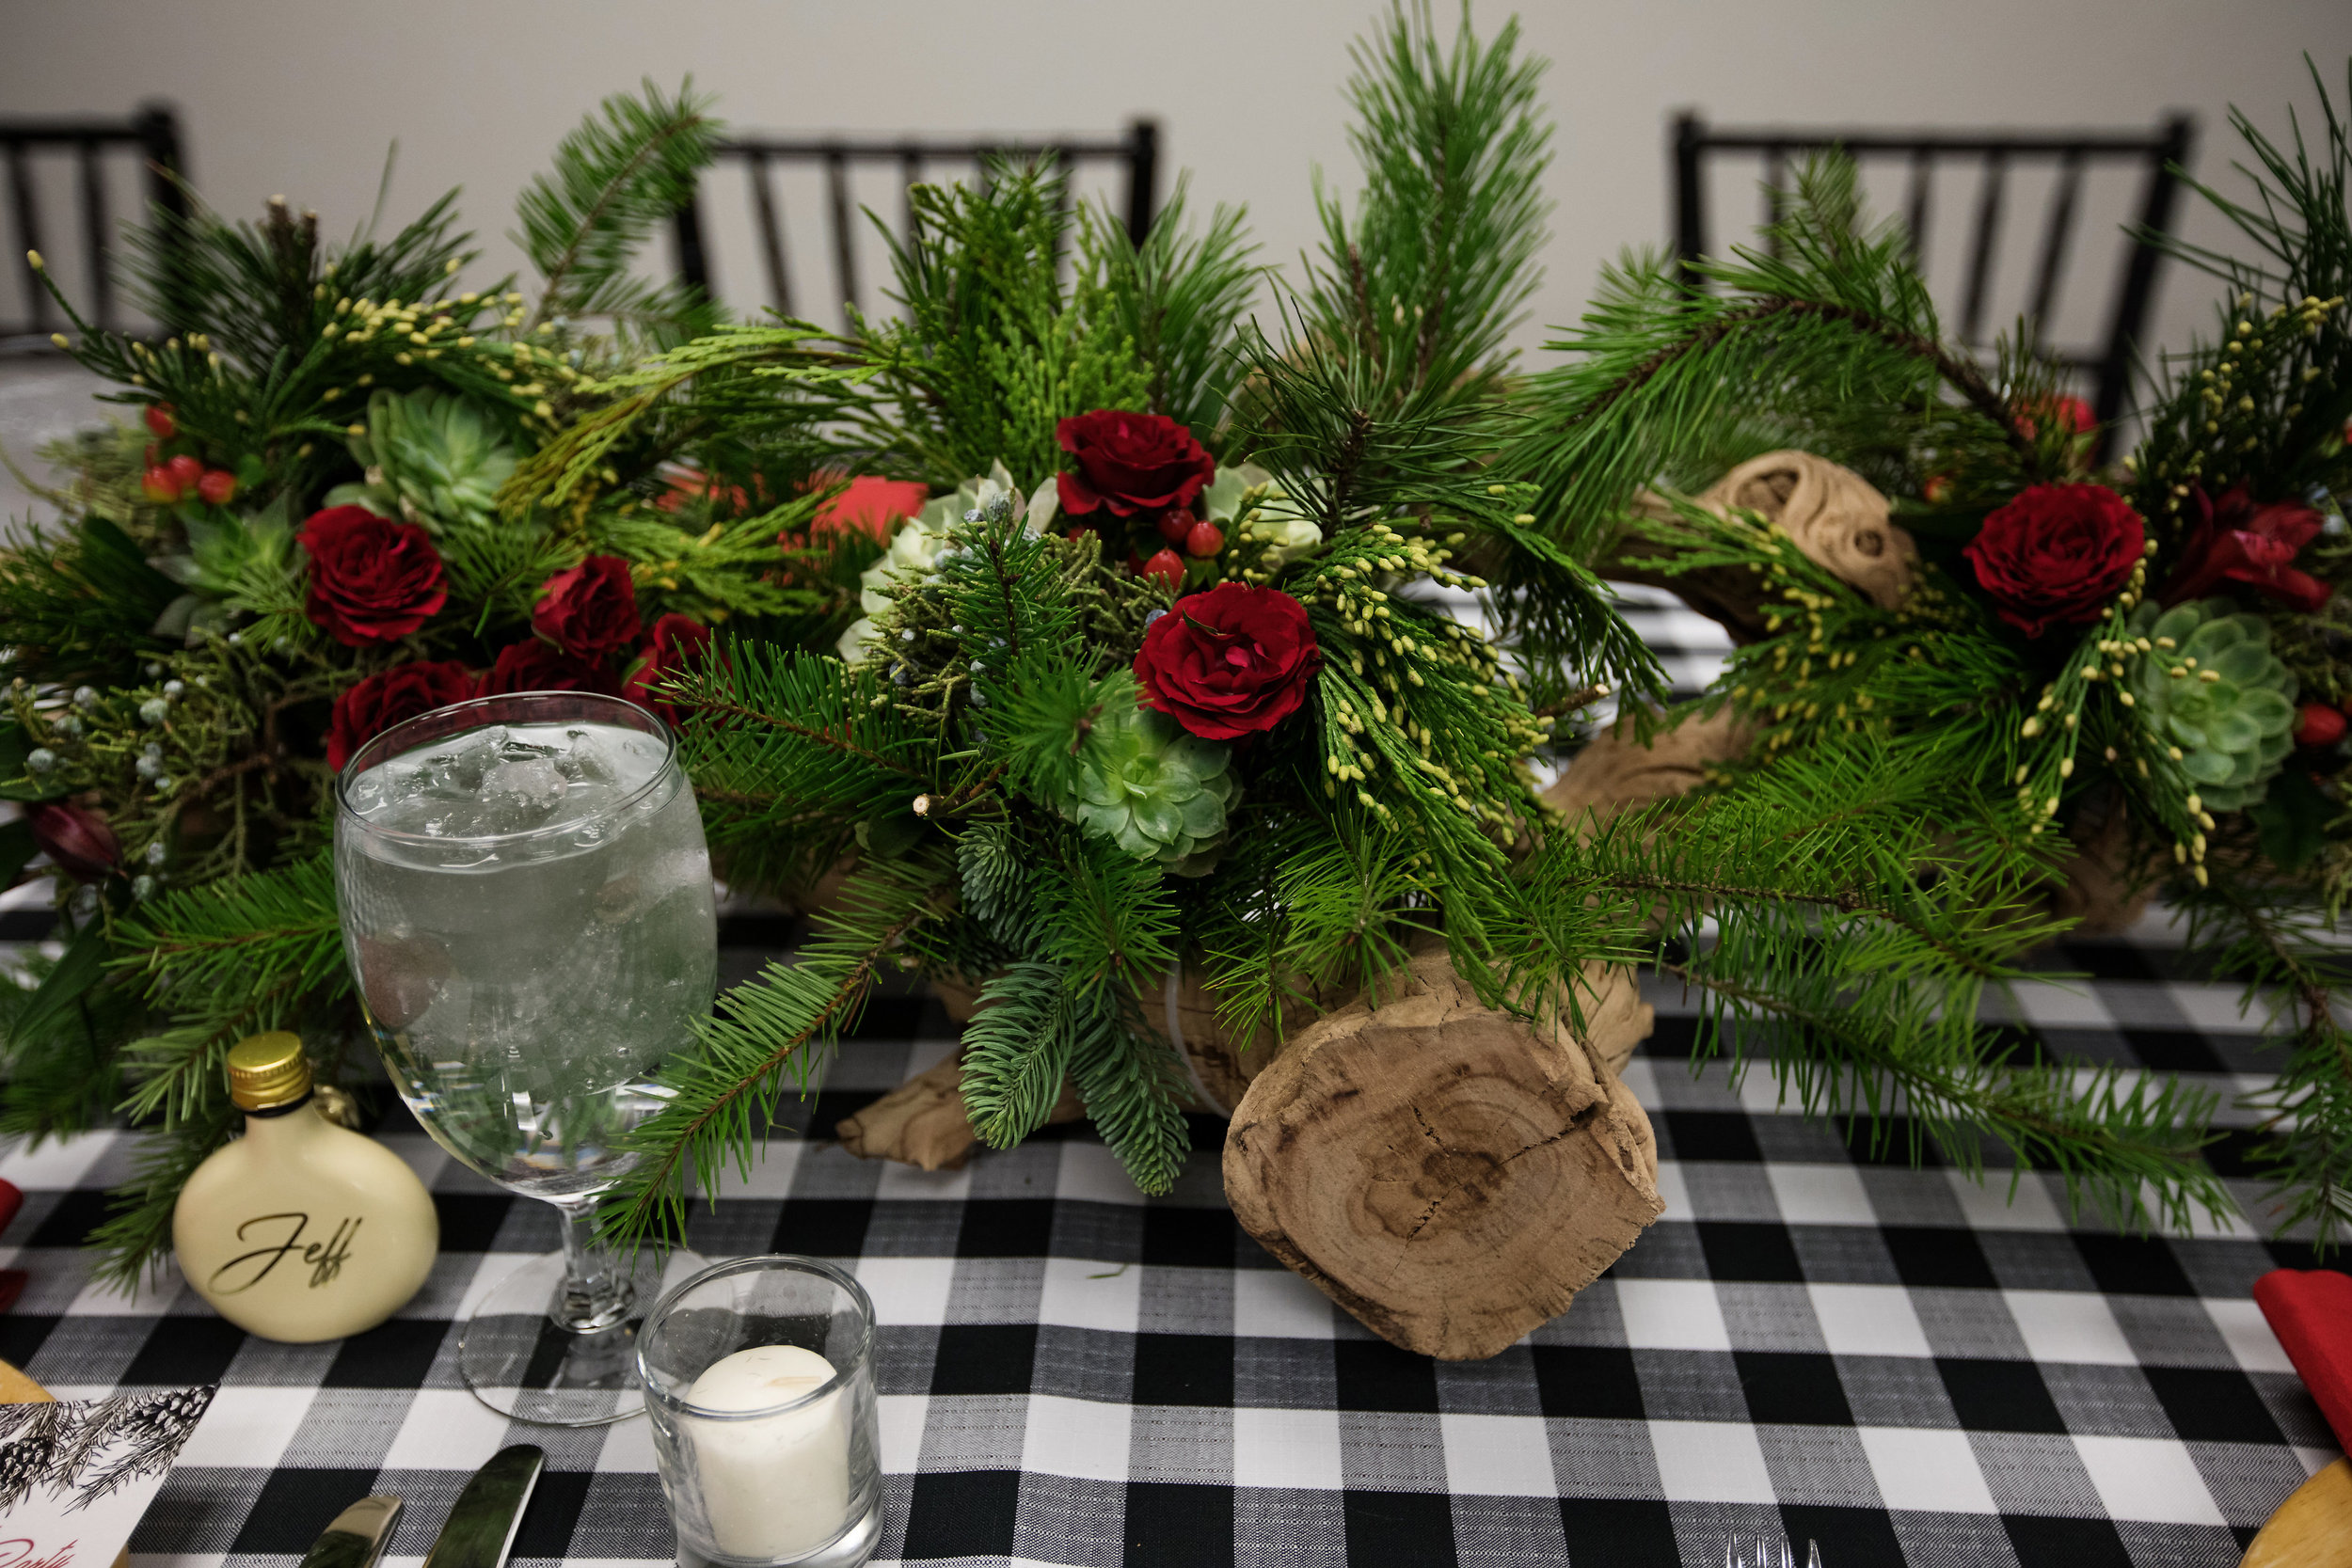 4 holiday centerpiece chiavari chair christmas party christmas dinner red and green centerpieces red rose succulent driftwood centerpieces black and white checkered linen family dinner staff dinner Life Design Events photos by Largo Photography.jpg